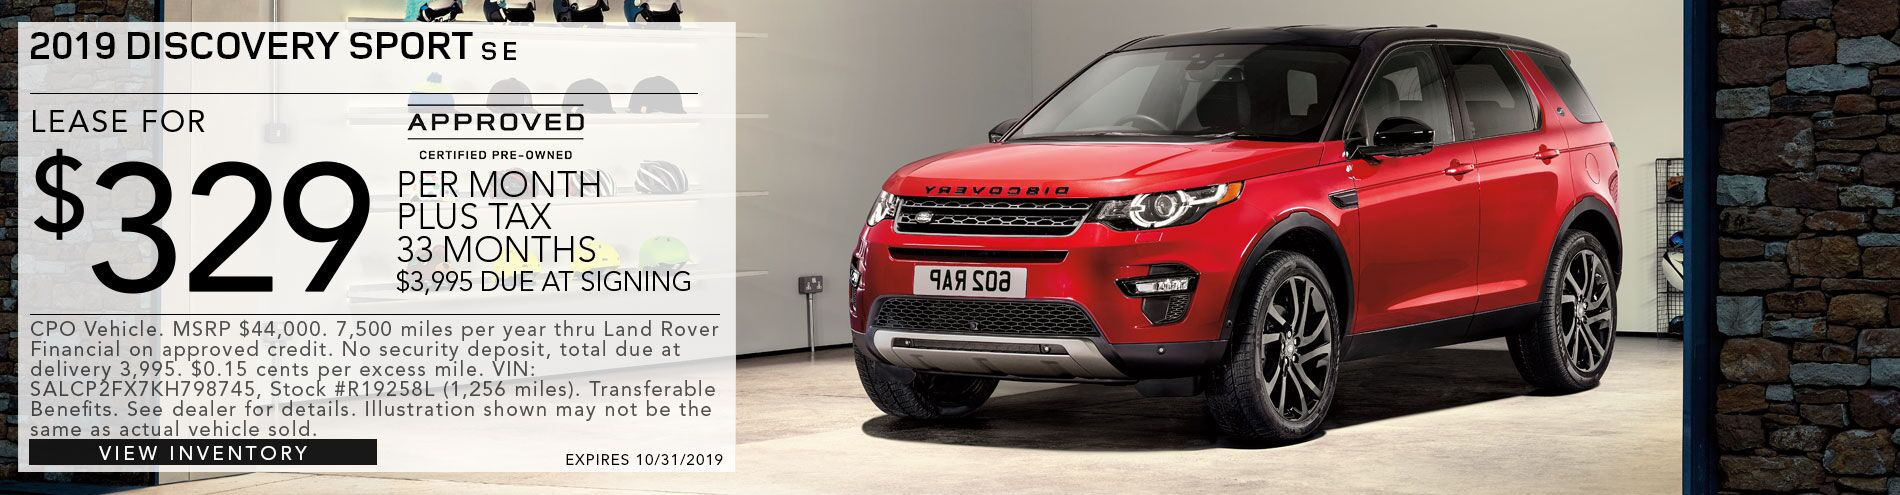 Discovery Sport SE CPO Vehicle